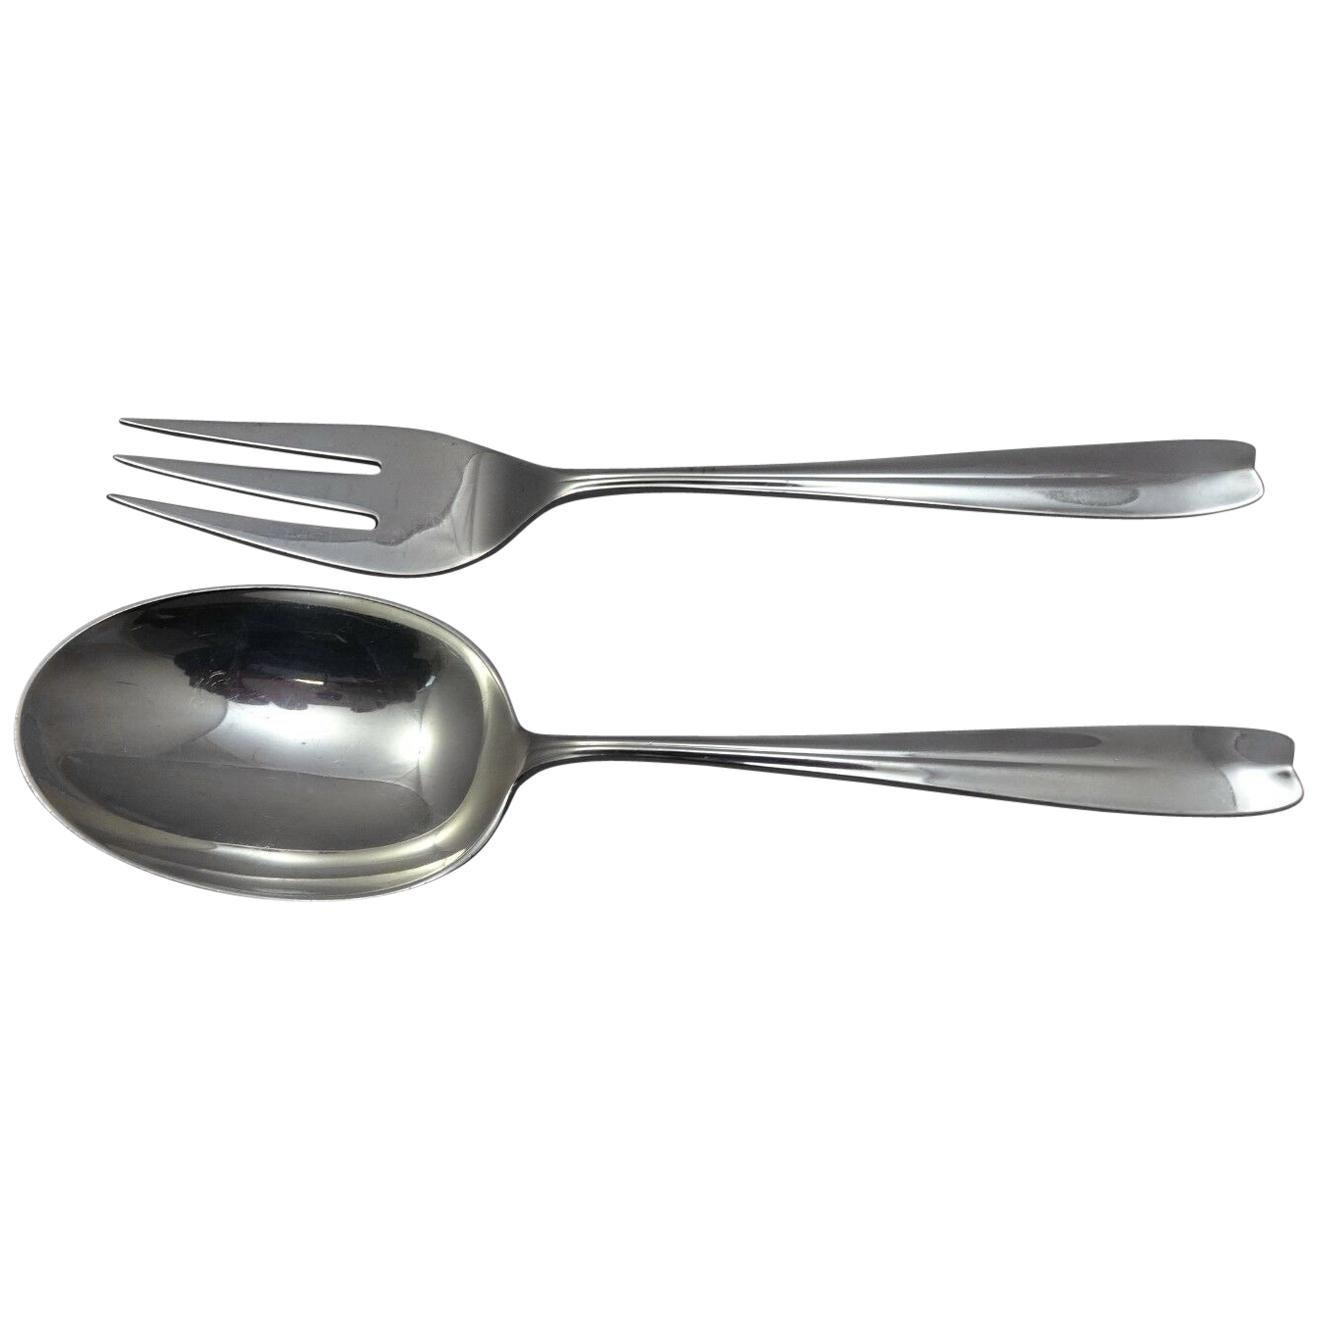 Cordis by Tiffany & Co. Sterling Silver Vegetable Serving Set 2-Piece